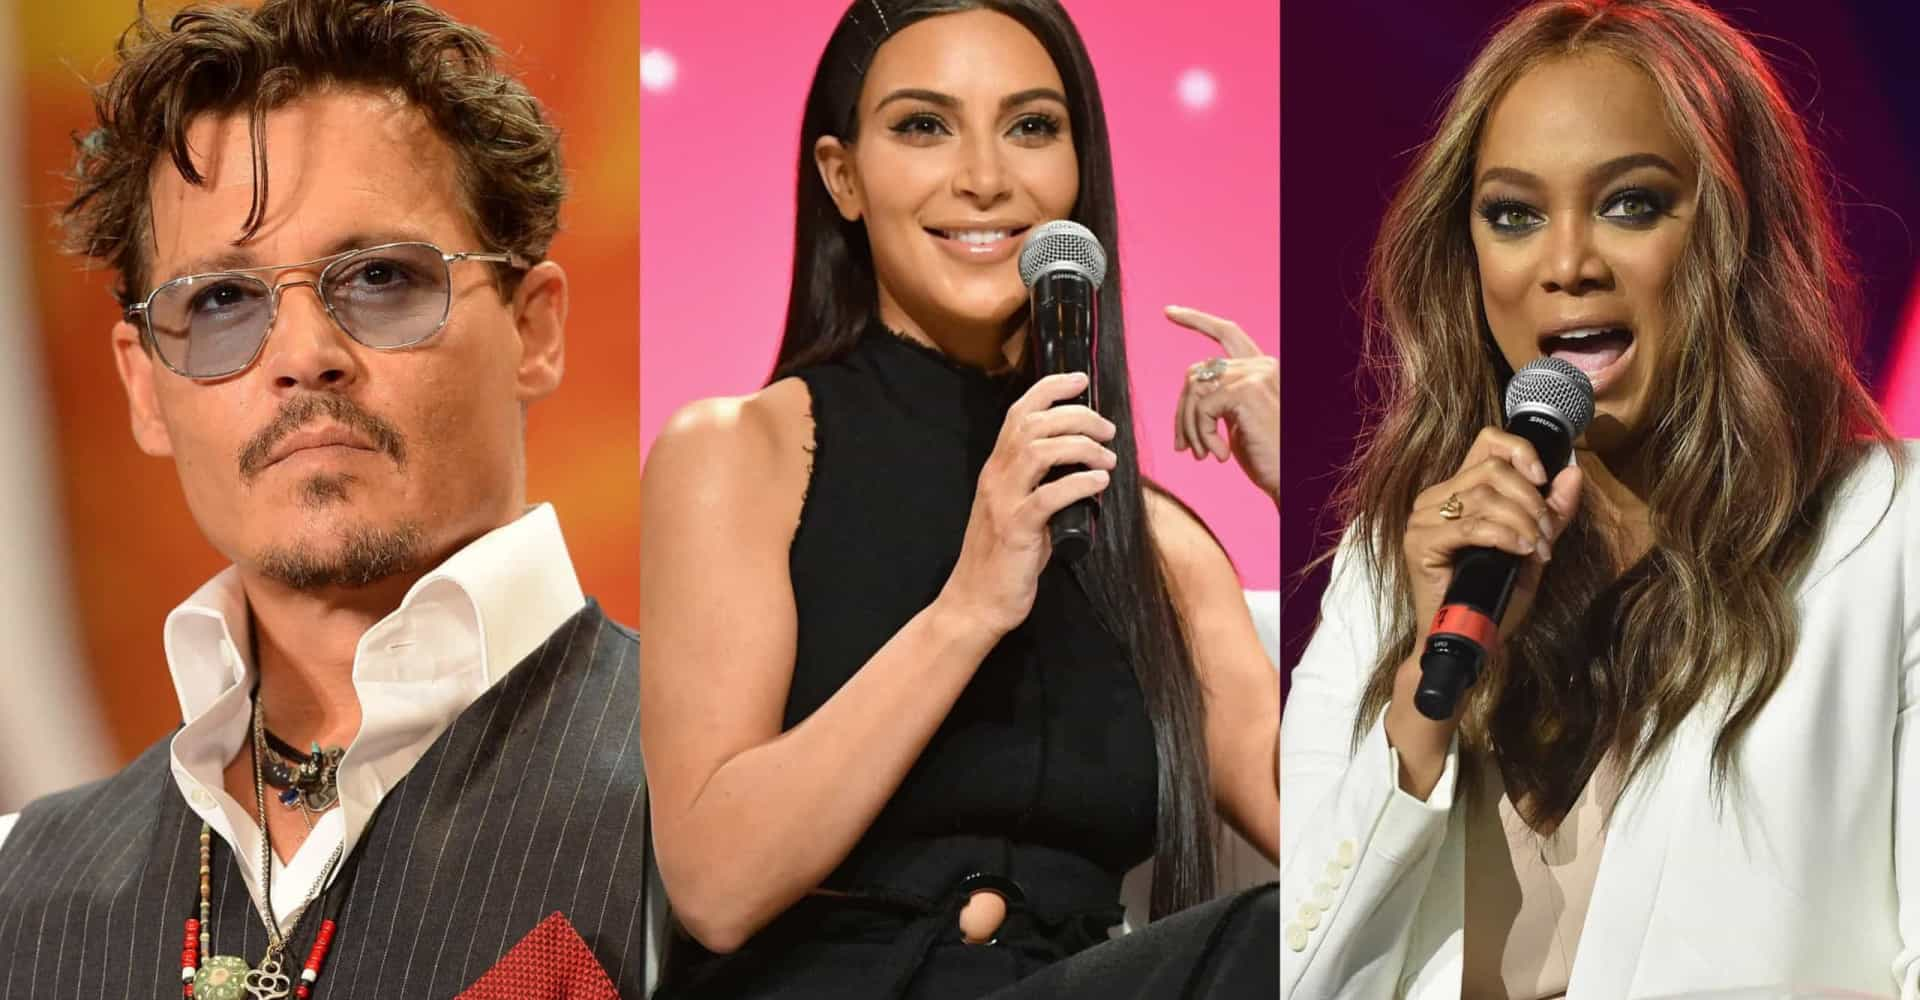 Celebrities reveal their phobias and greatest fears